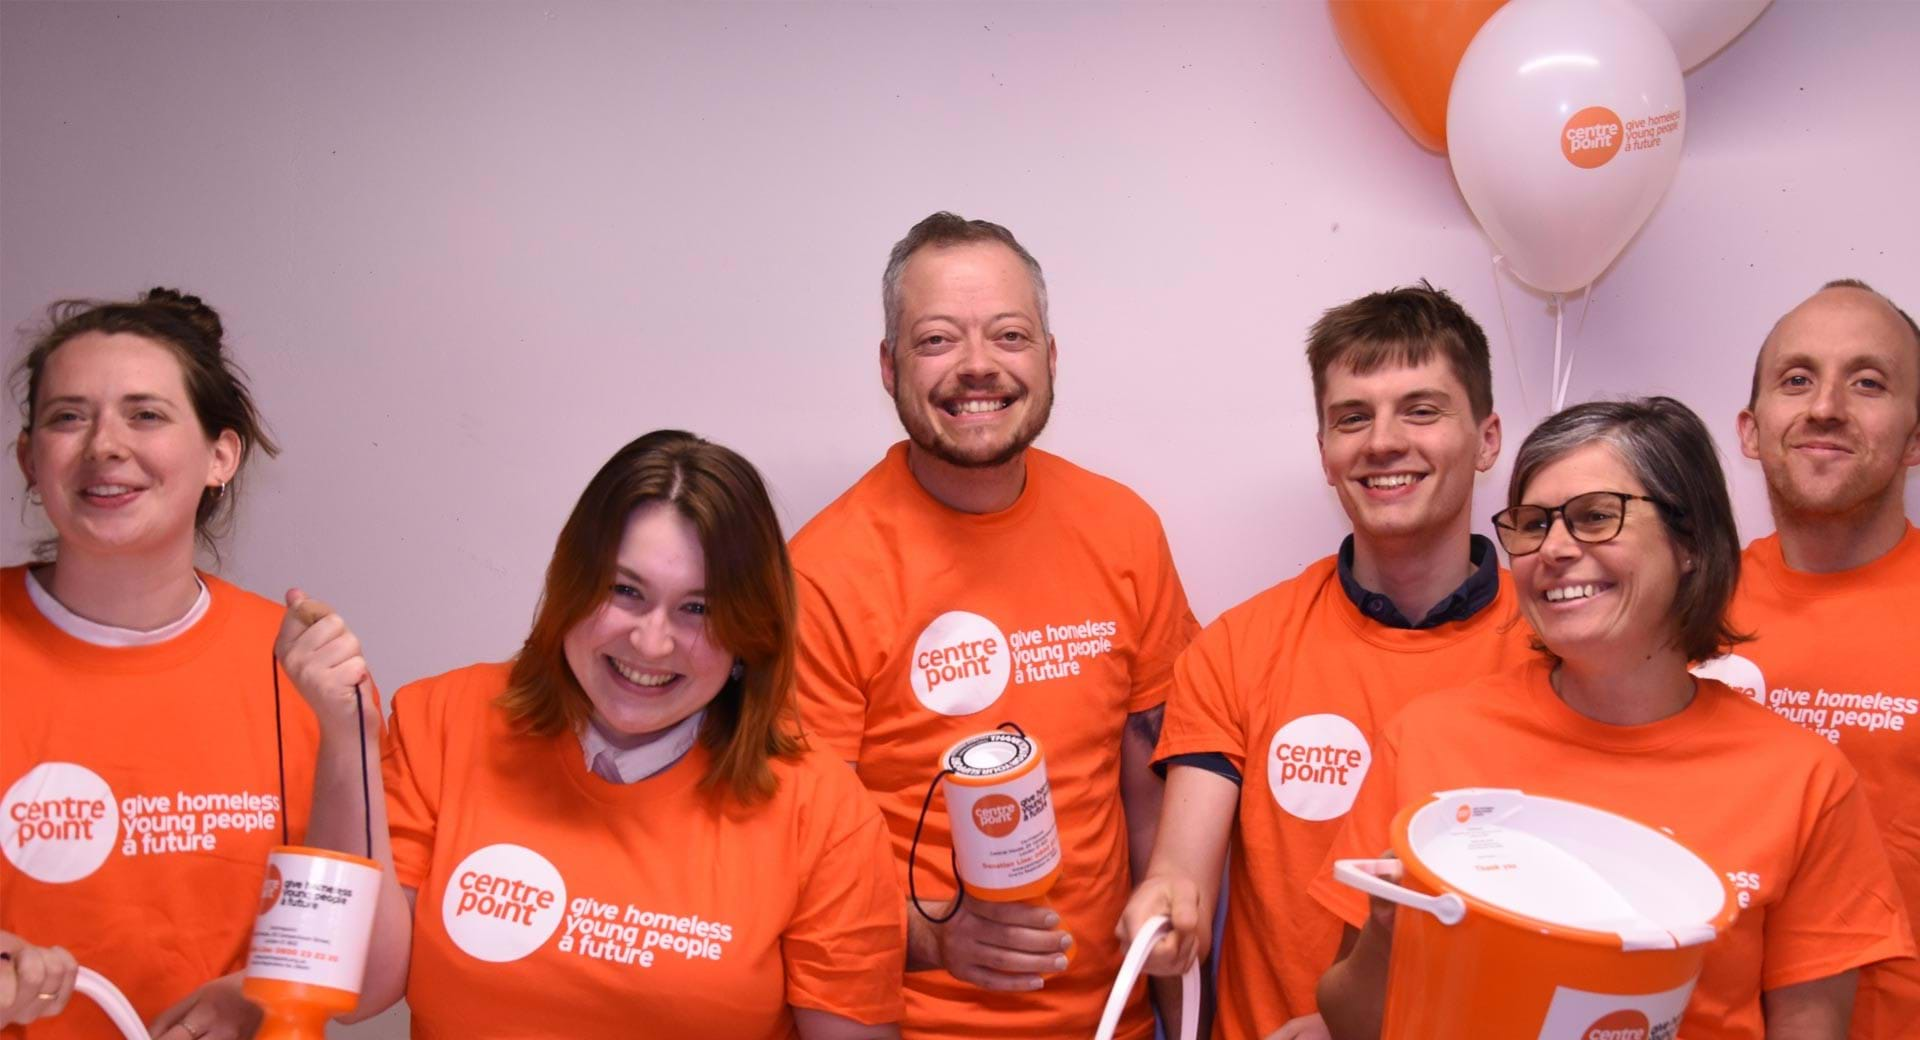 Centrepoint supporters hold up buckets and collection tins.